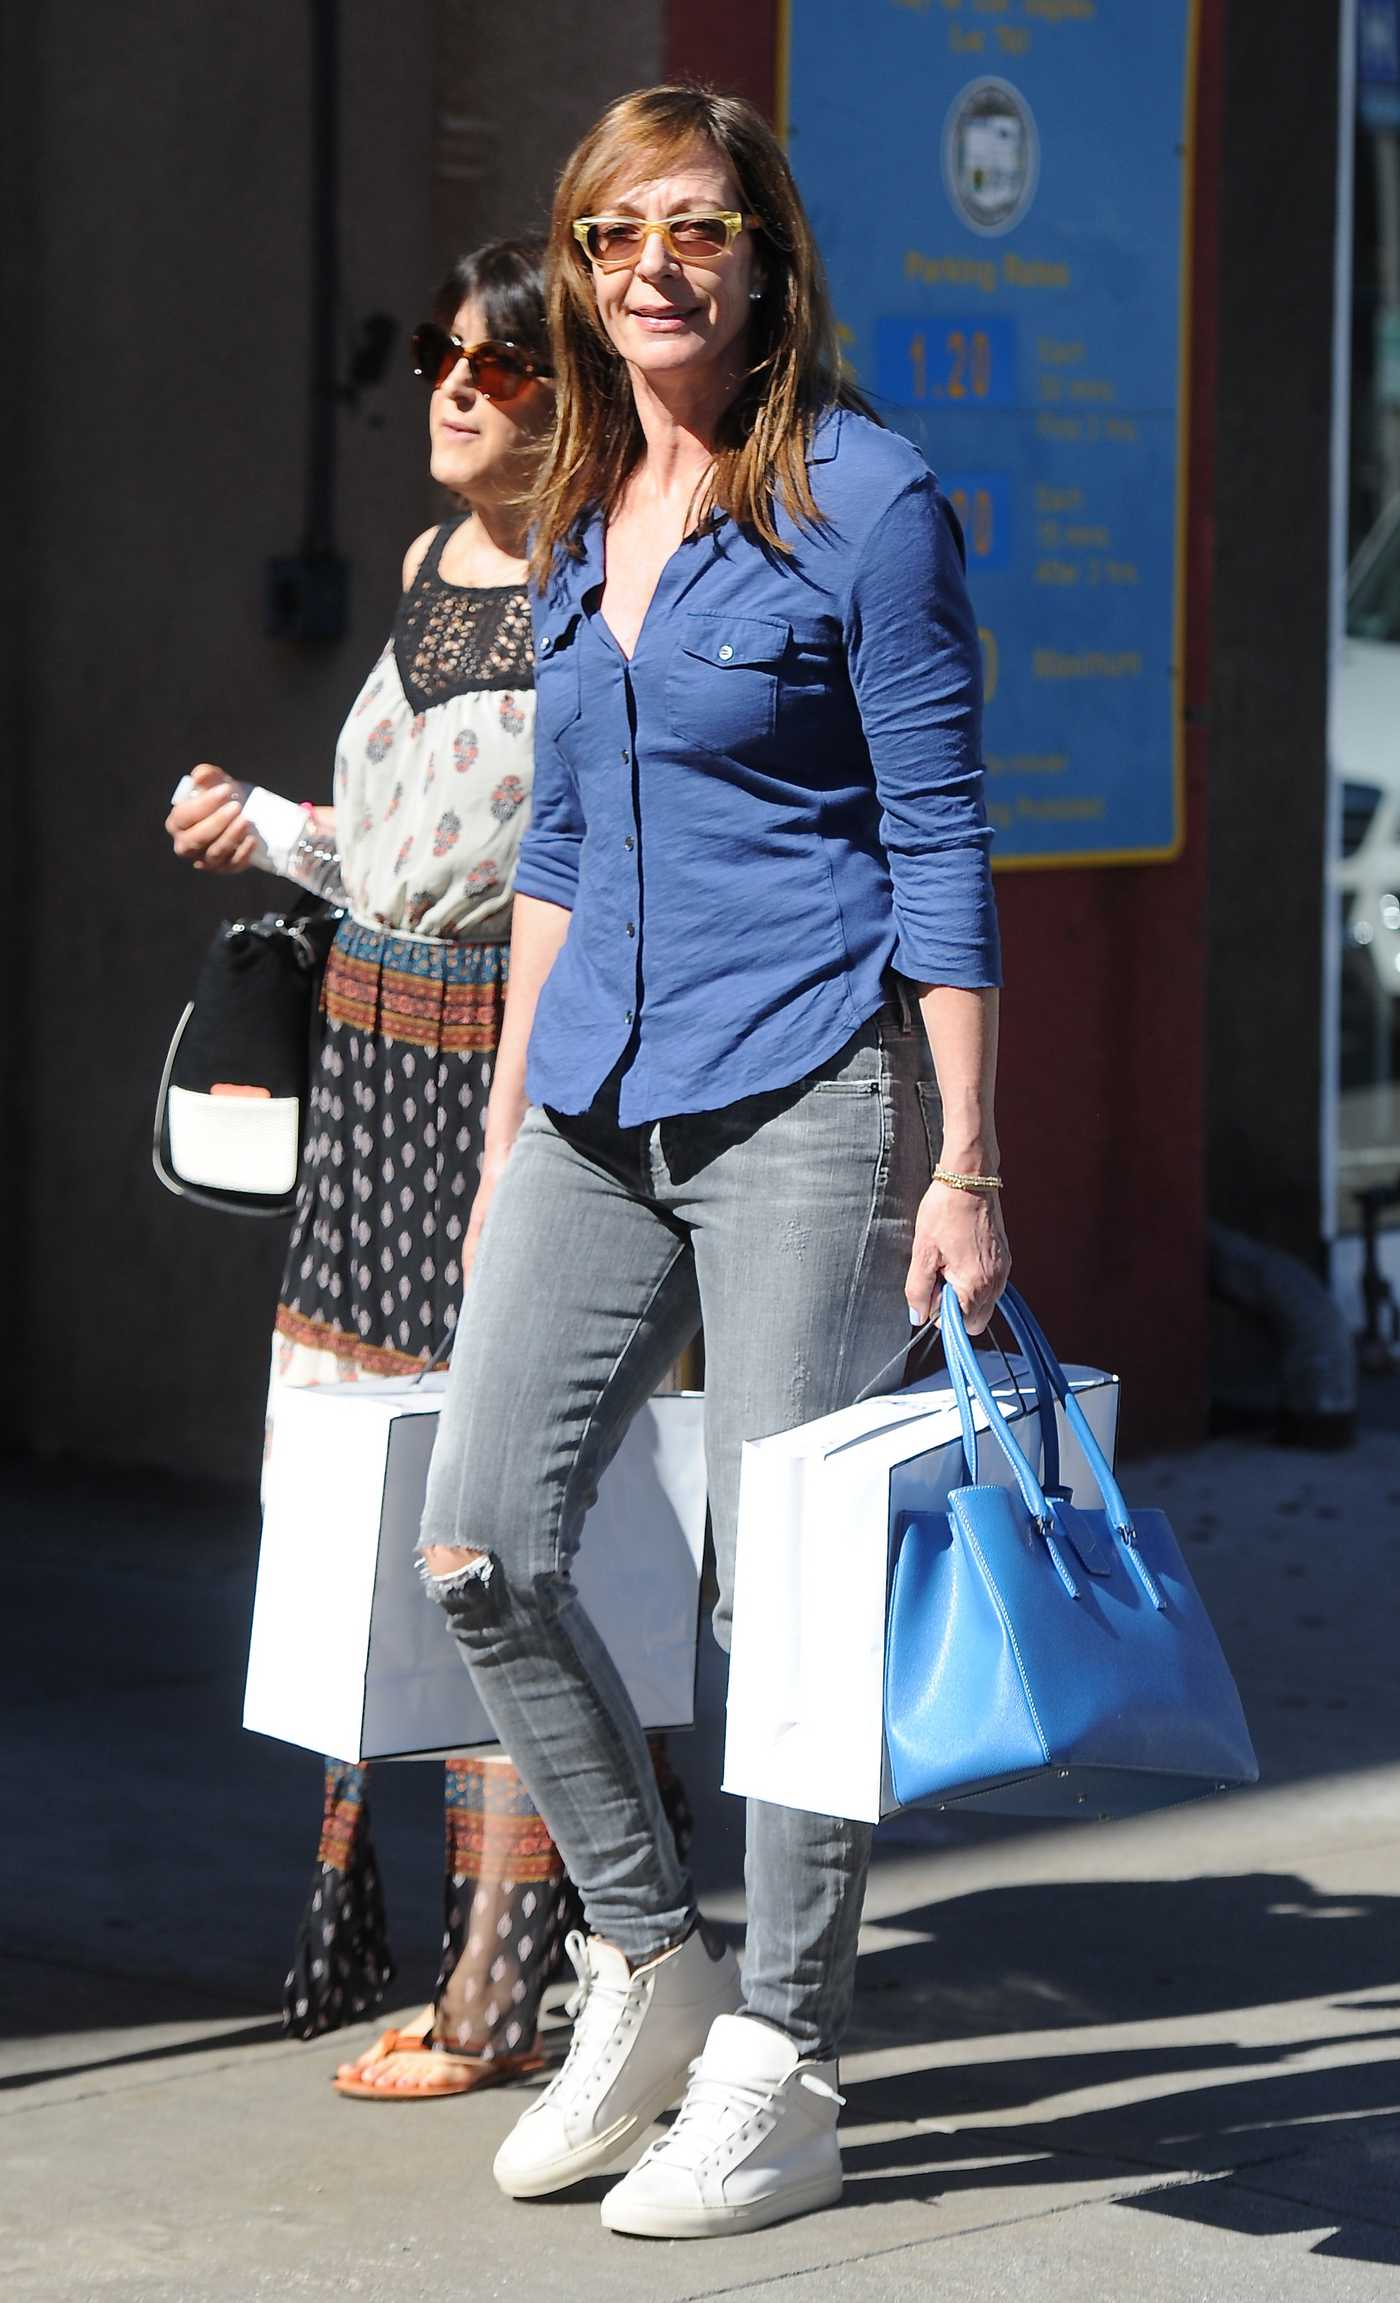 Allison Janney Shopping in Los Angeles